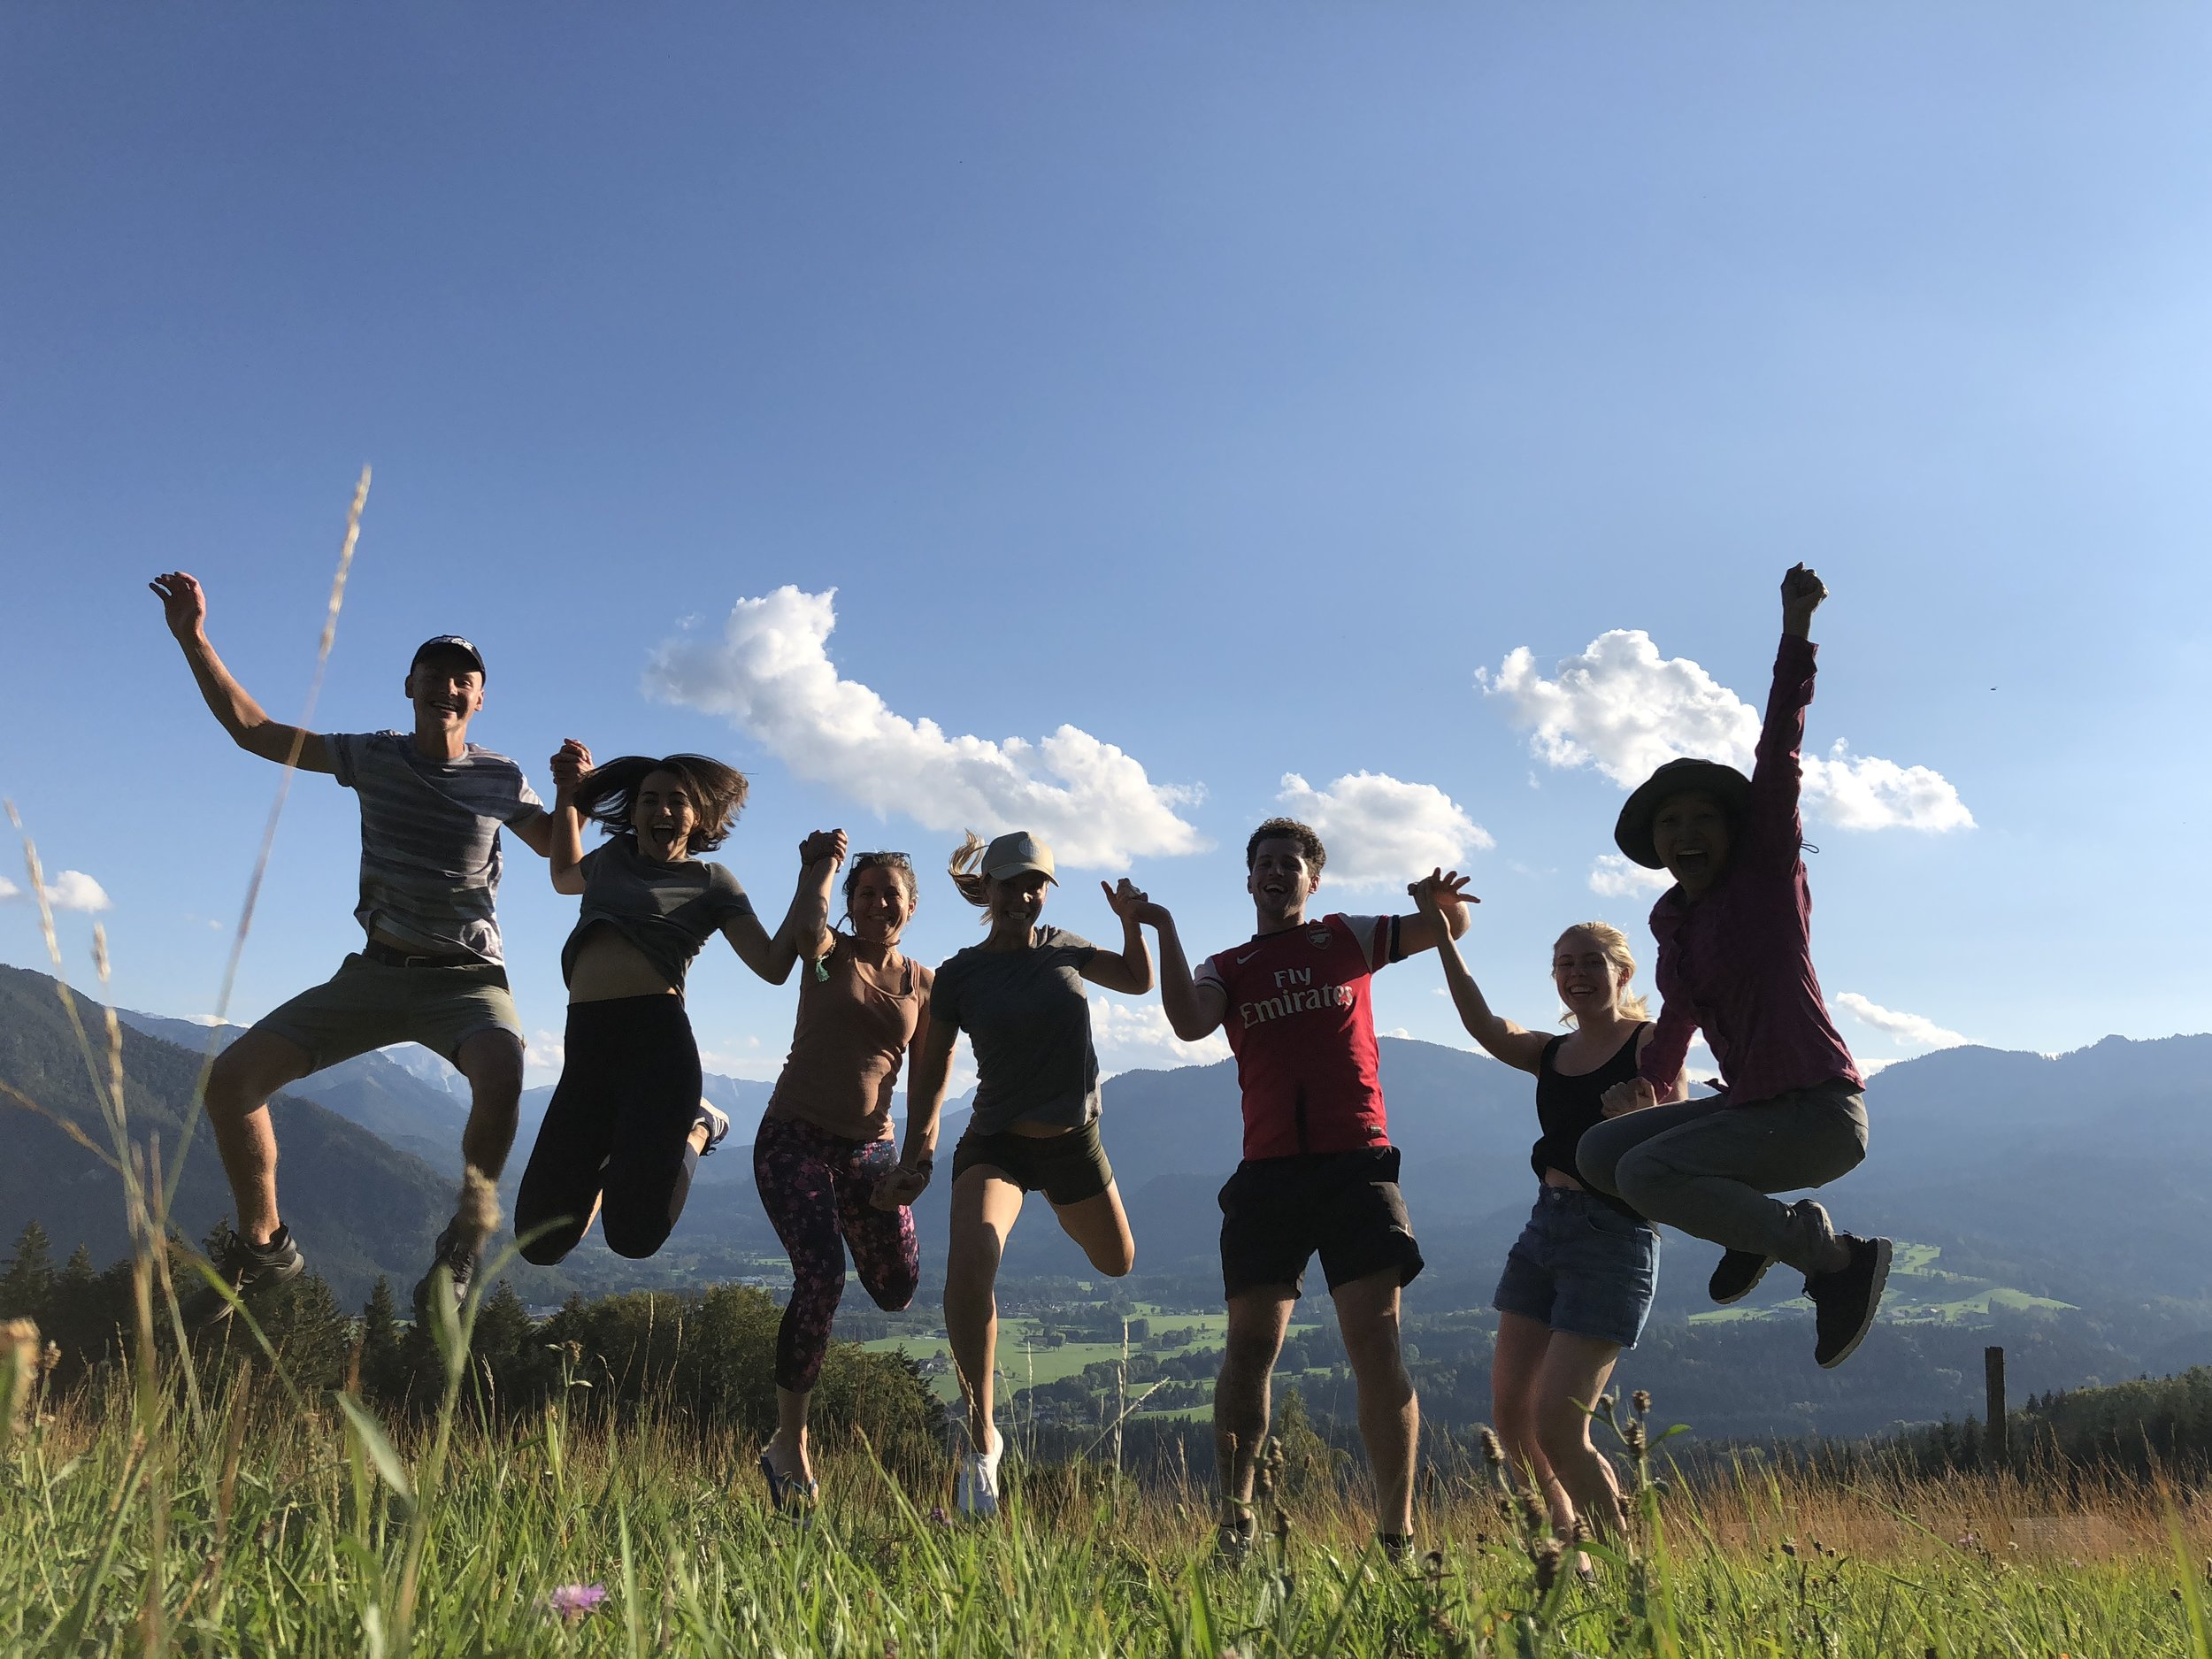 playing fellow volunteers at the buddhist center into doing a jump shot after we climbed to the top of a mountain near Gomde.